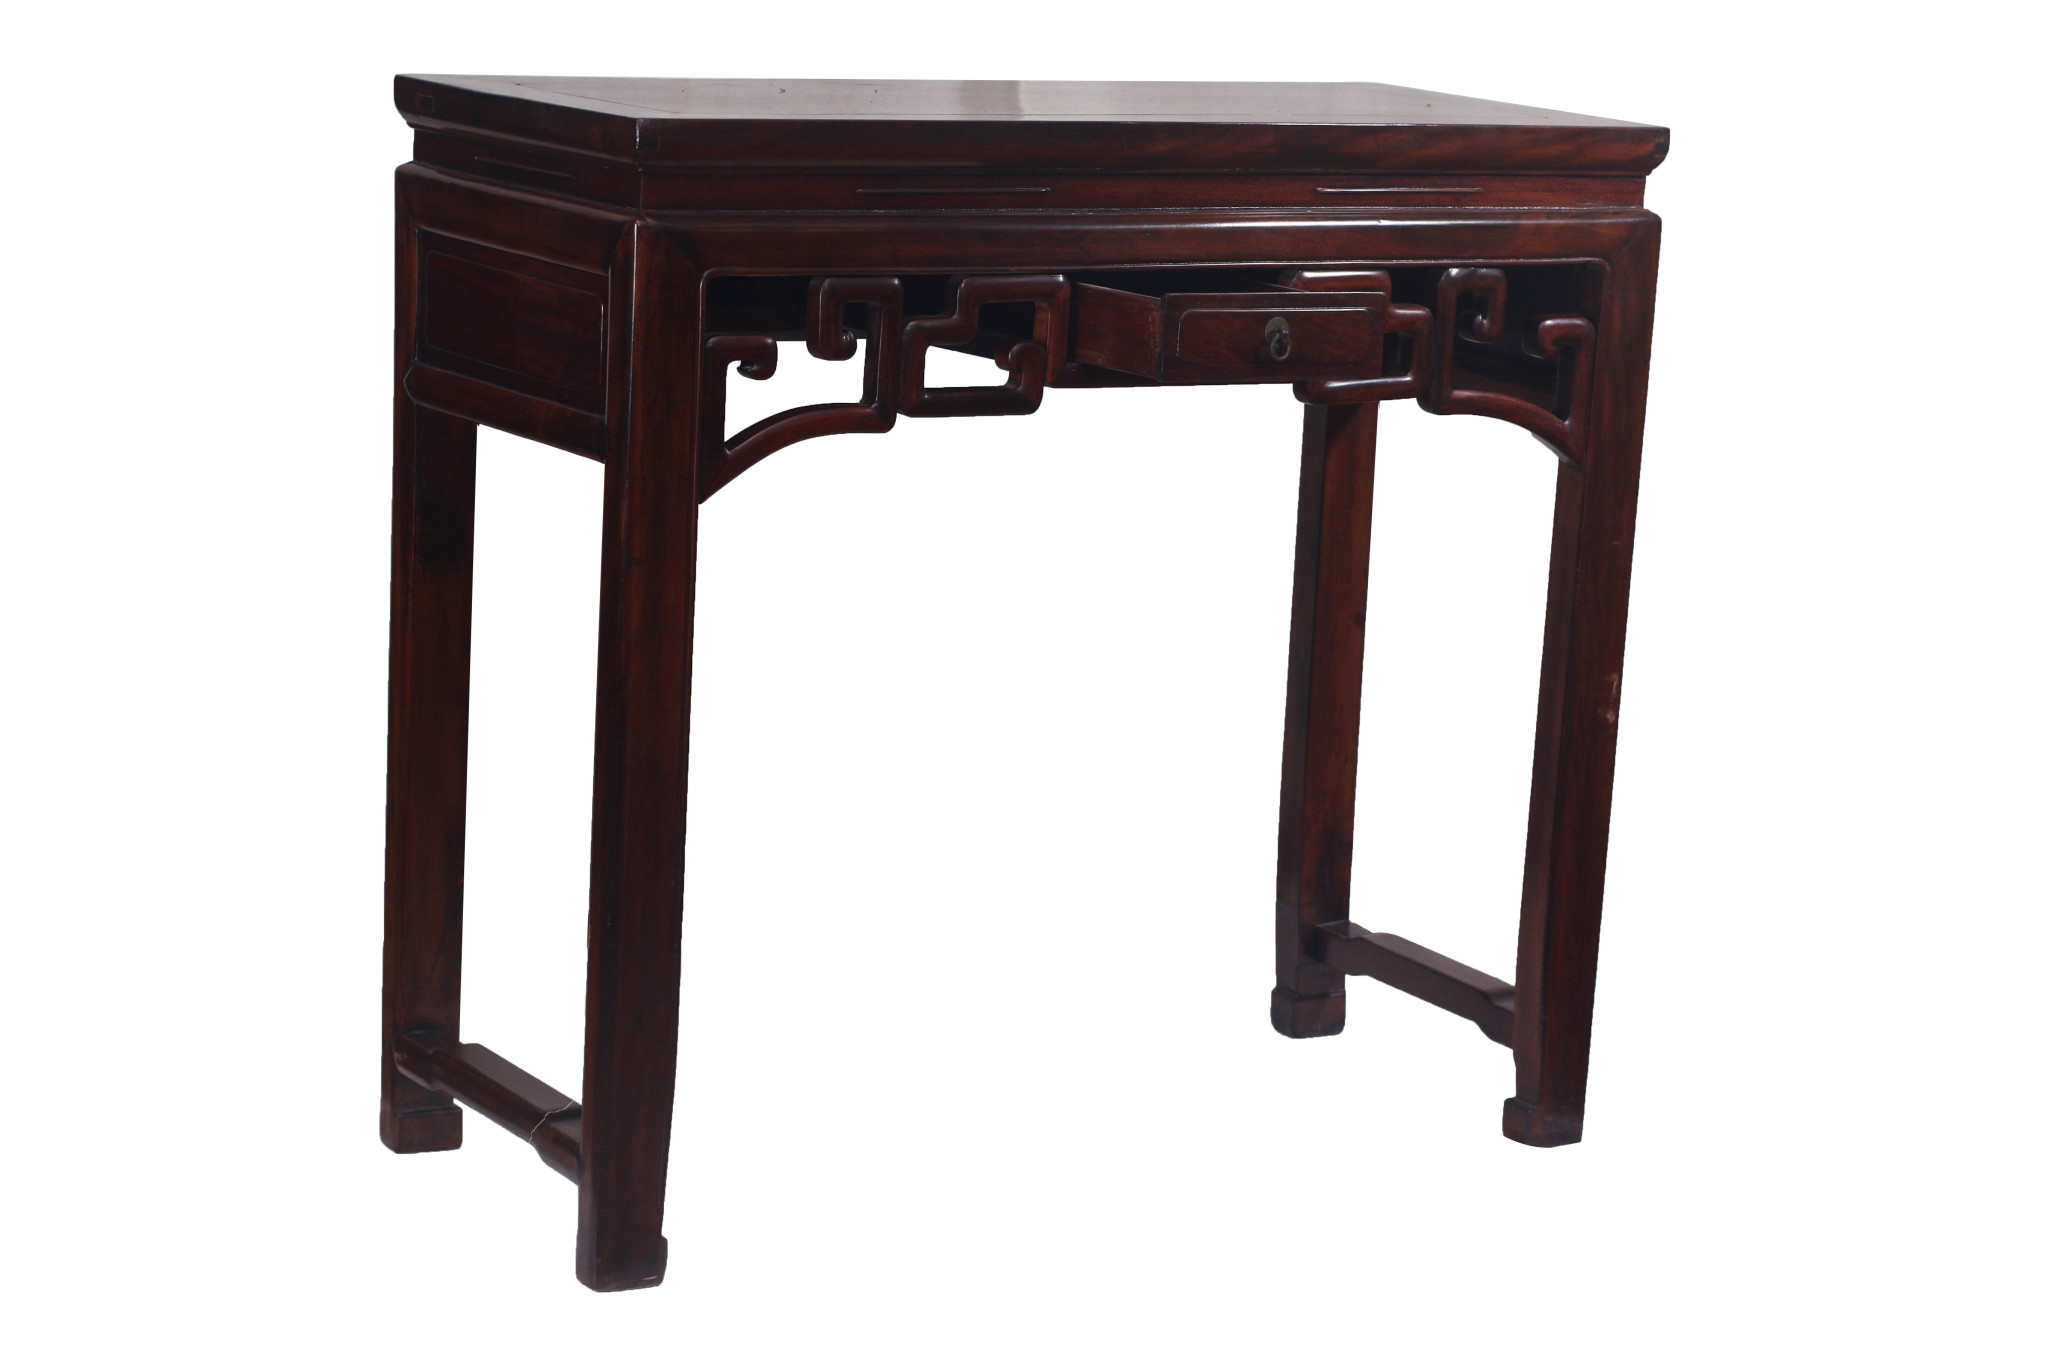 Kleine Sidetable Met Lade.Fine Asianliving Fine Asianliving Antieke Klein Chinees Sidetable Details Lade Zhejiang China